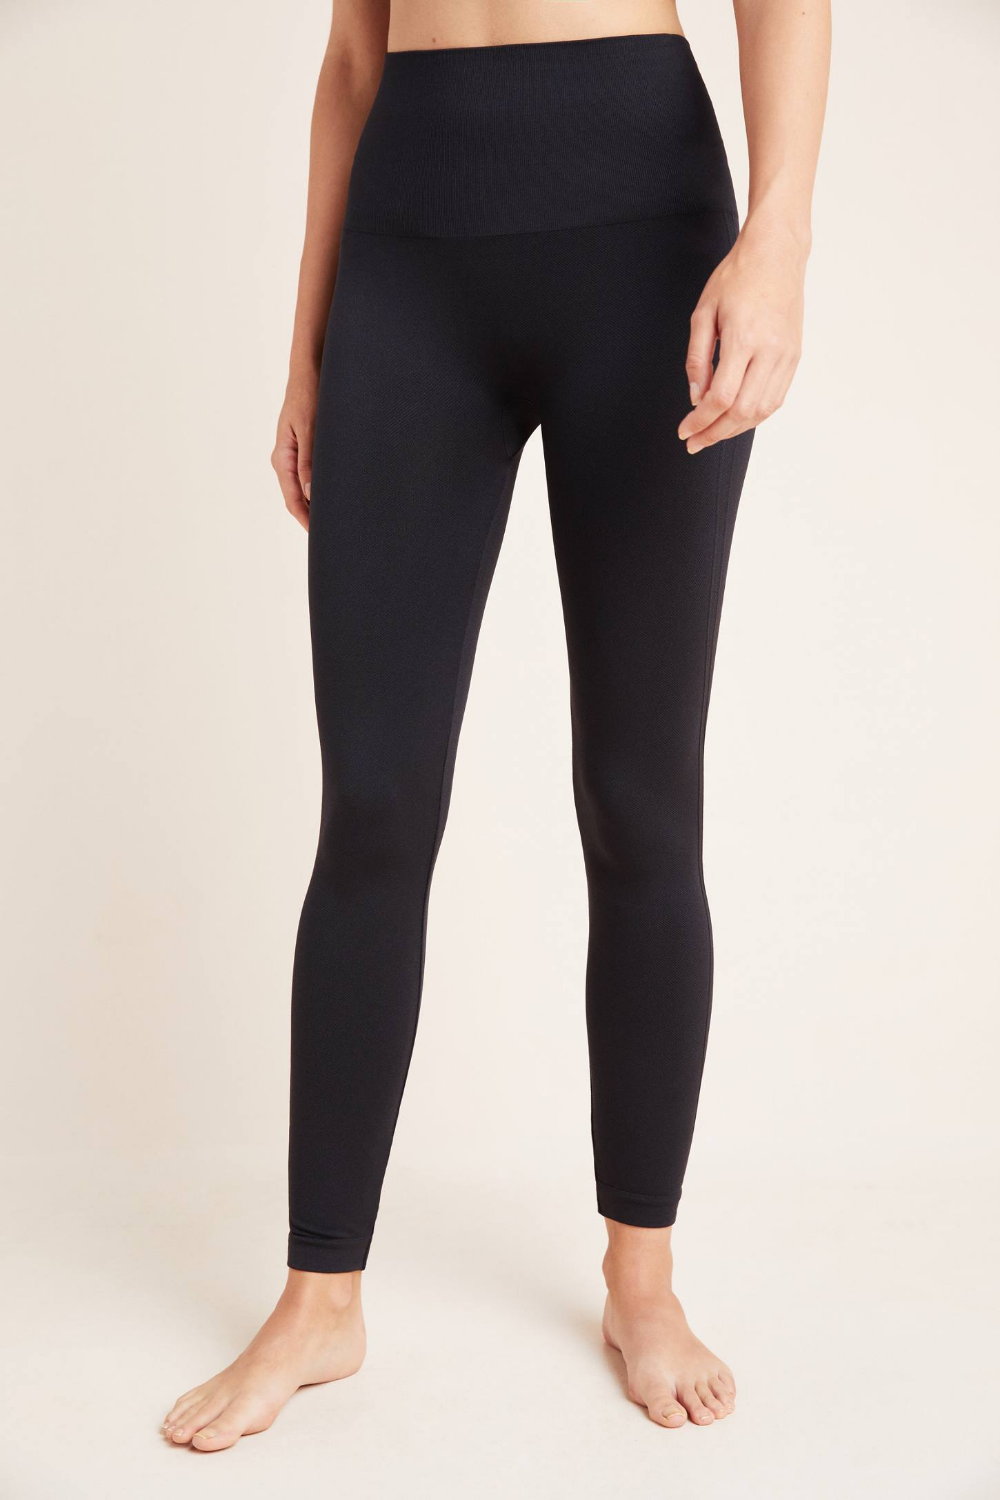 Spanx Seamless Leggings by in Black Size S, Women's